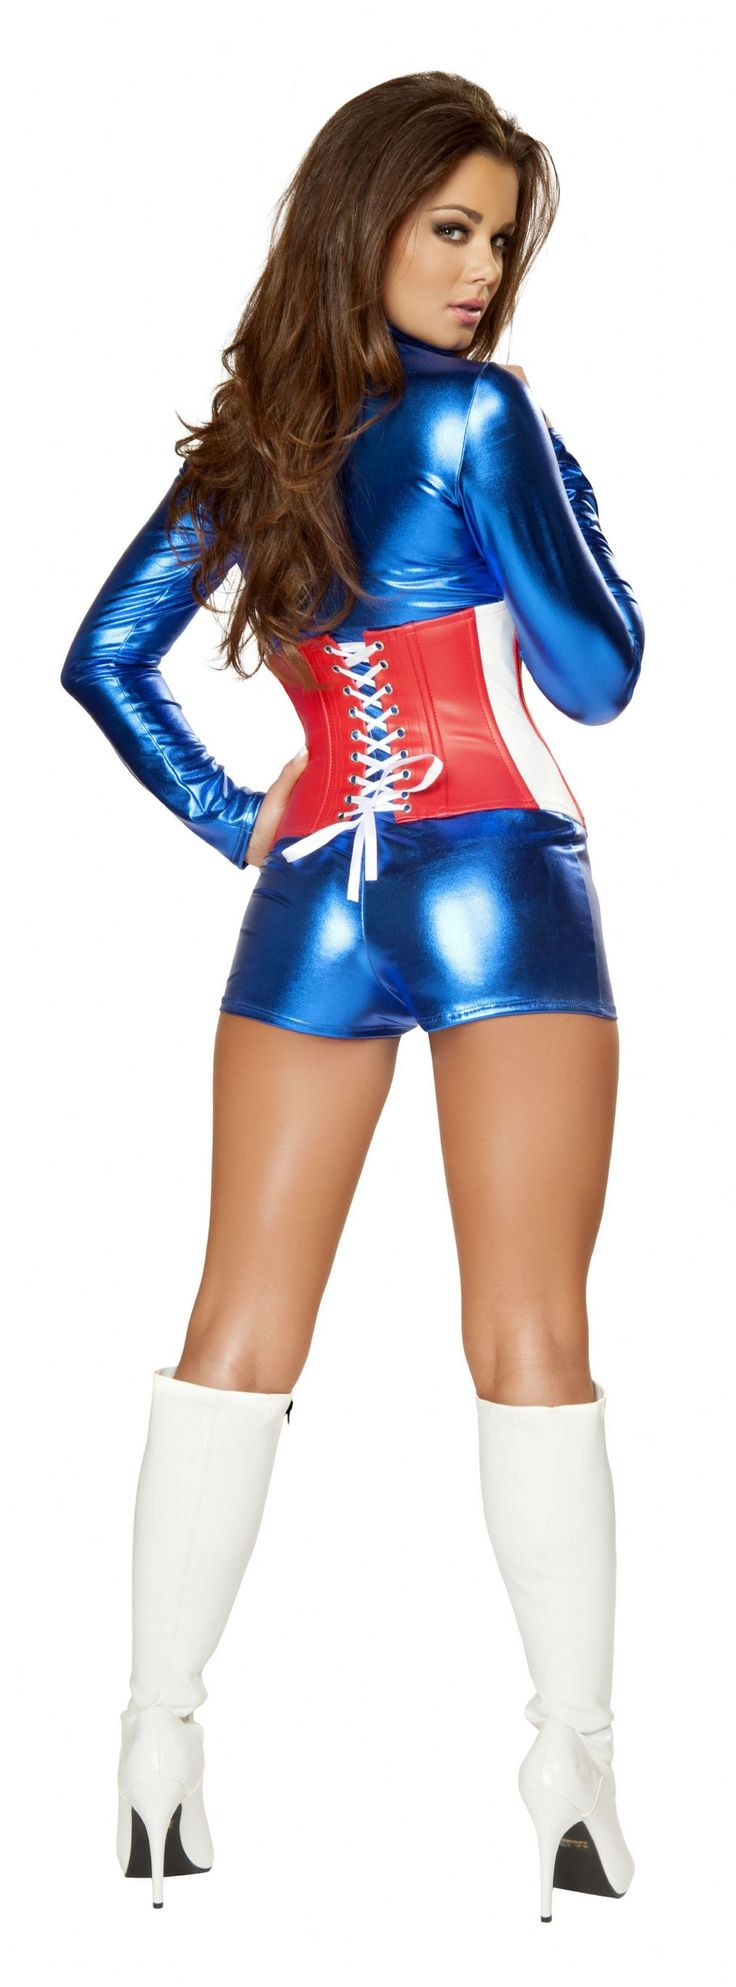 2Pc Sexy All-American Costume  Dessie Mitcheson  Pinterest  Costumes-5346